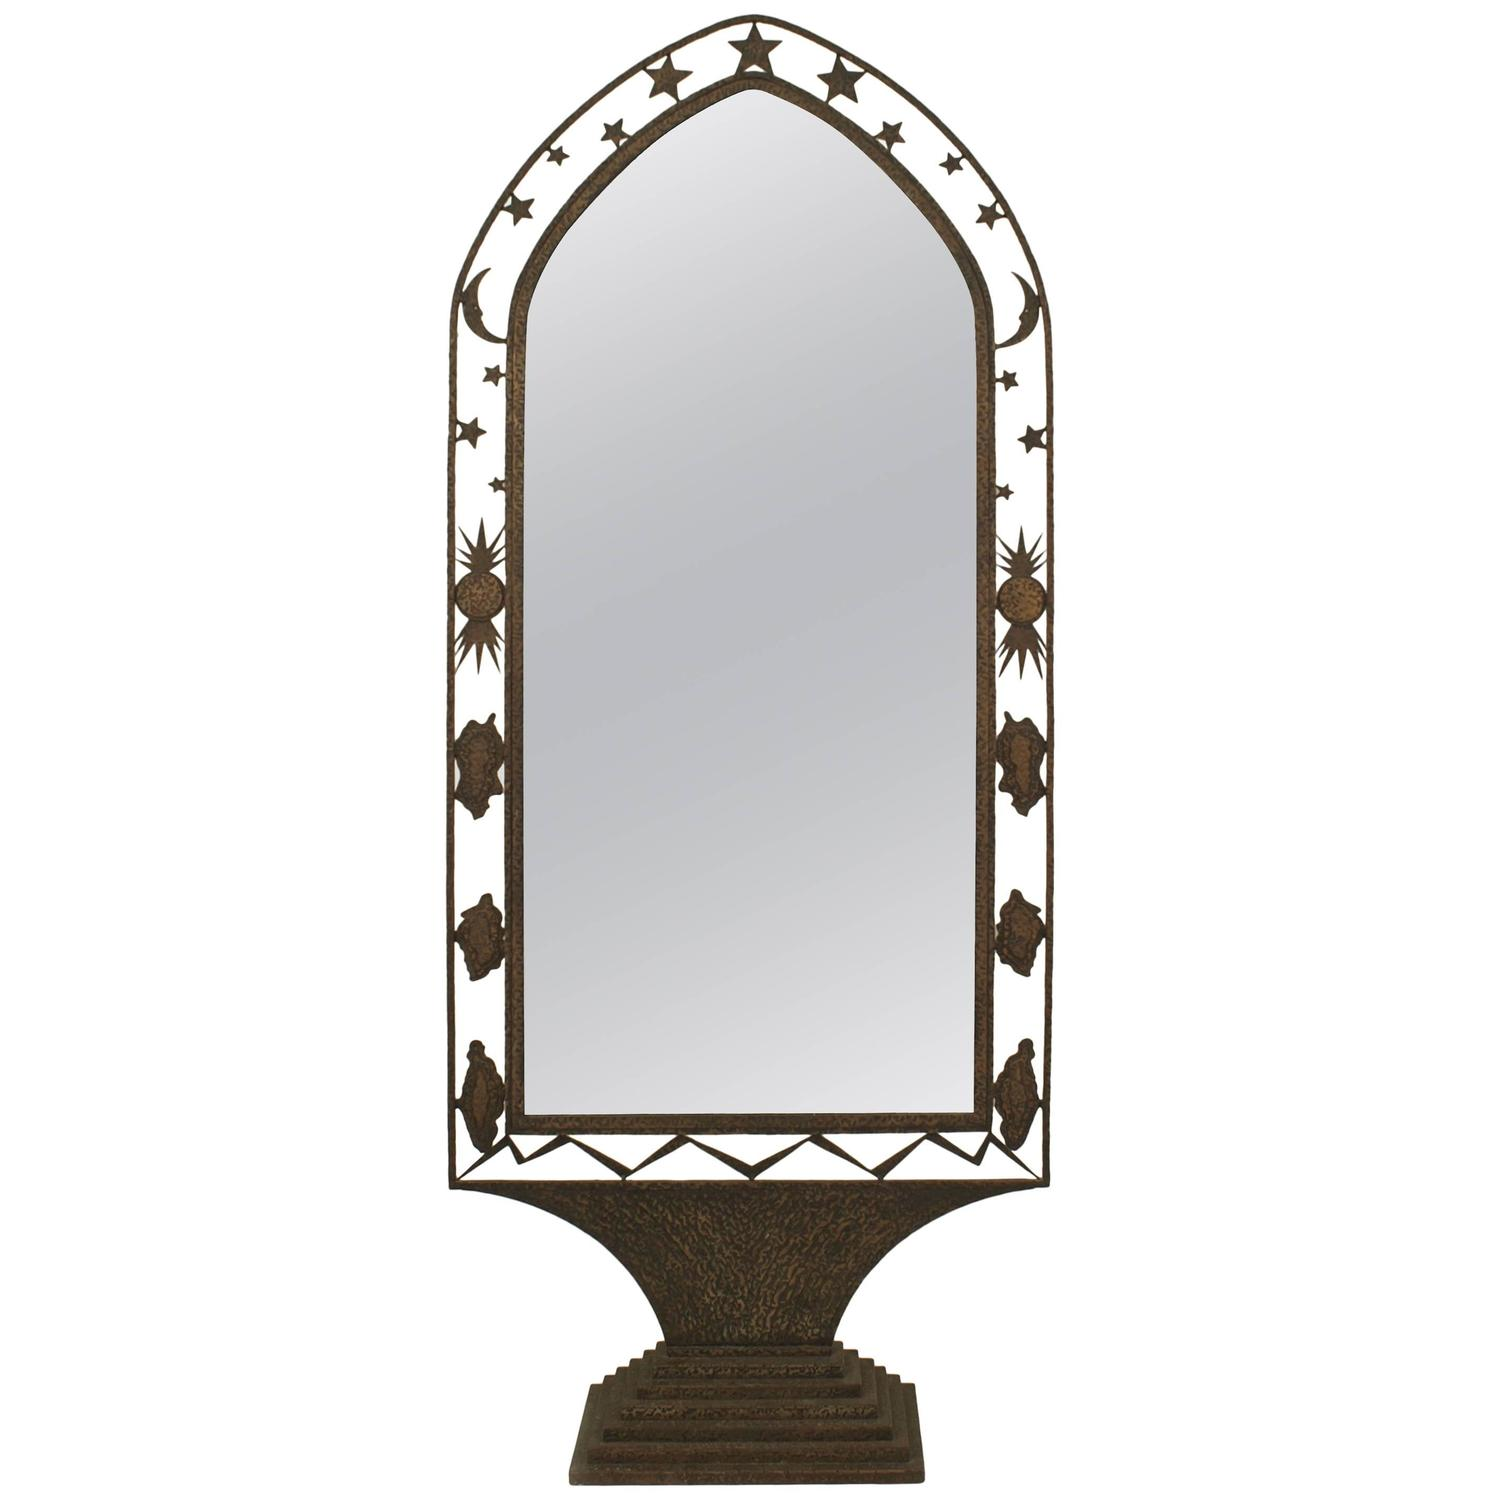 French art deco wrought iron cheval mirror for sale at 1stdibs for Floor mirrors for sale